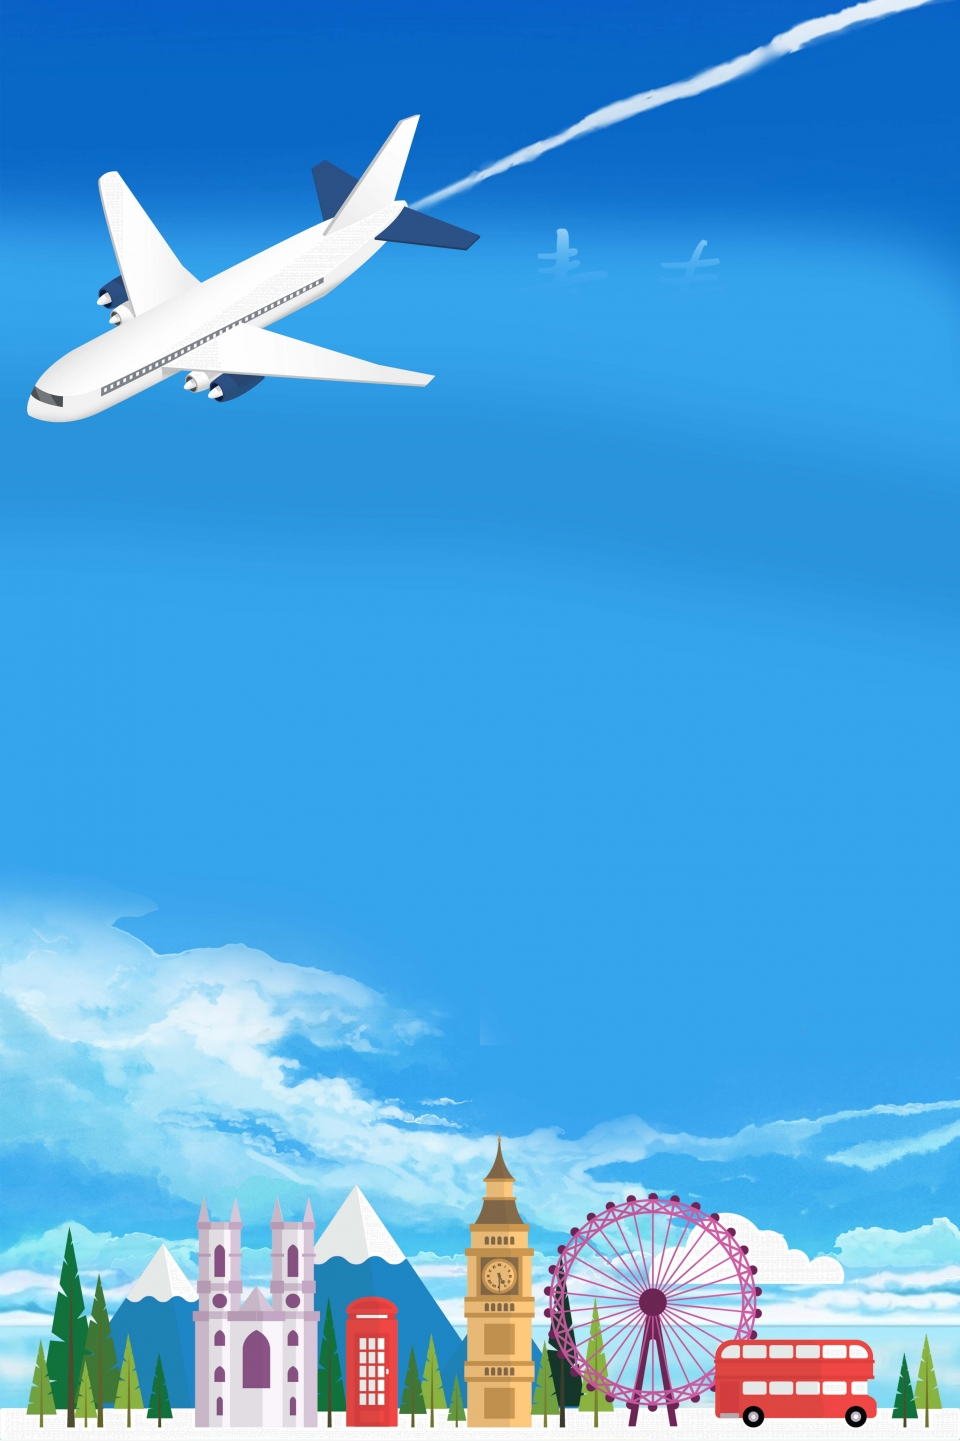 outbound travel around the world tour background airplane departure tourism background image for free download https pngtree com freebackground outbound travel around the world tour background 1130100 html